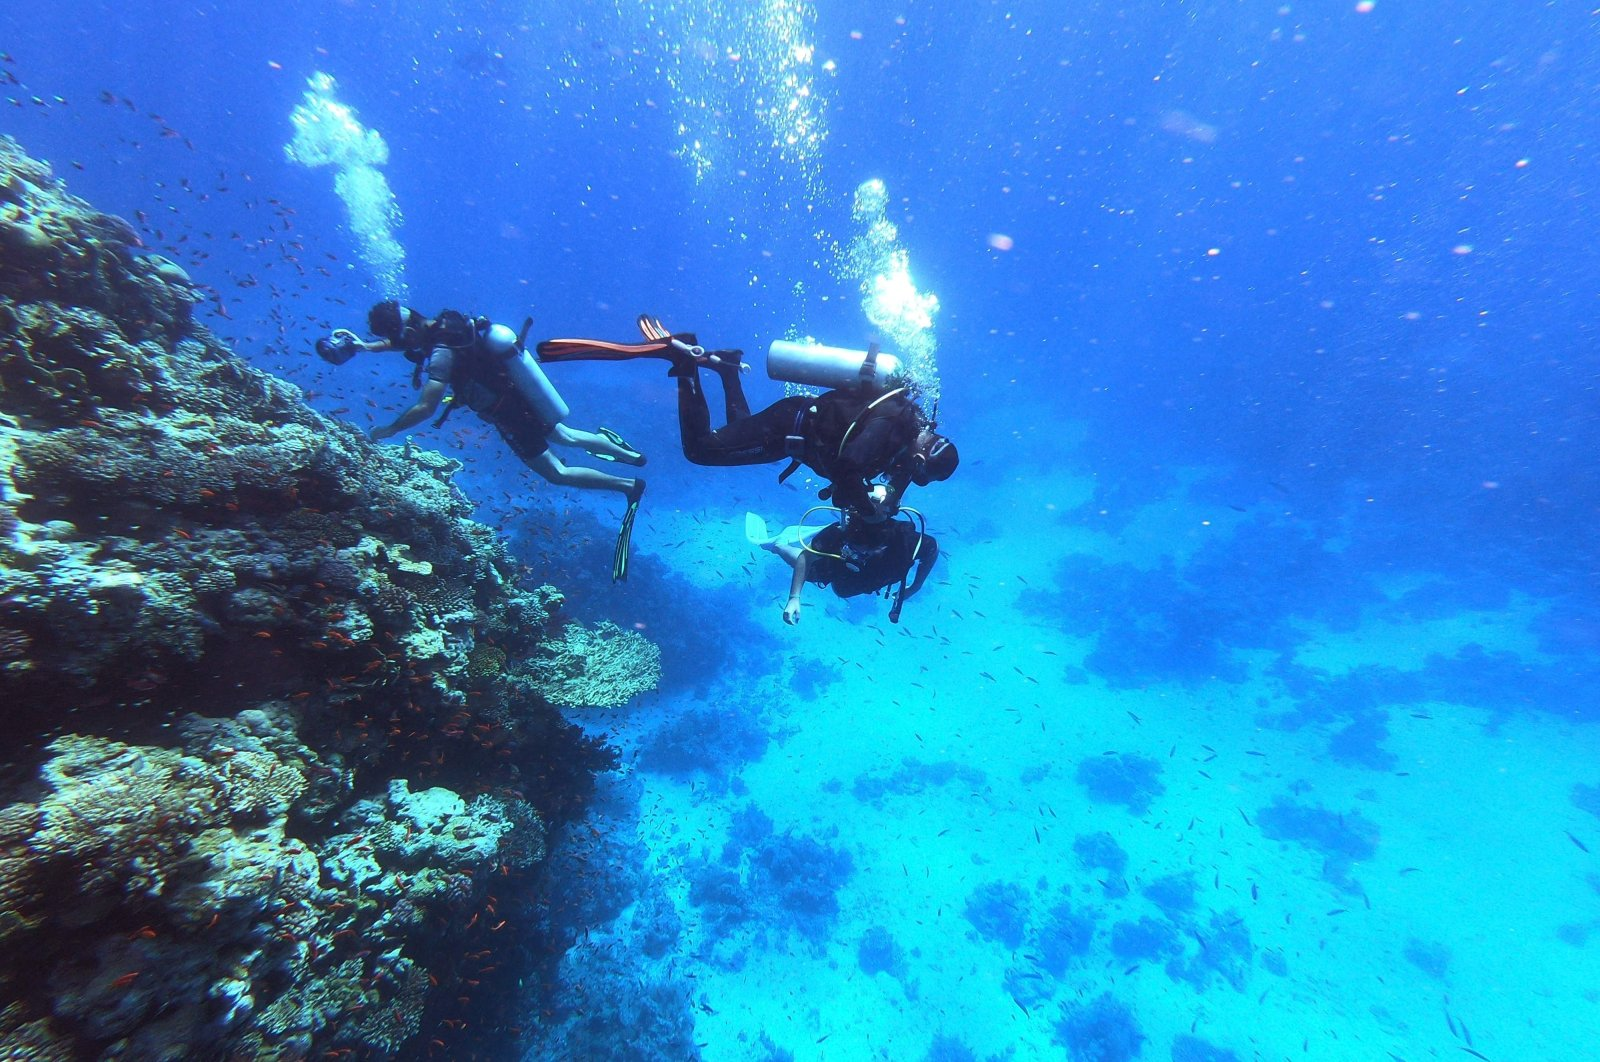 Scuba divers dive in the Red Sea waters by a coral reef near Egypt's resort city of Sharm el-Sheikh at the southern tip of the Sinai peninsula, Sept. 29, 2021. (AFP Photo)